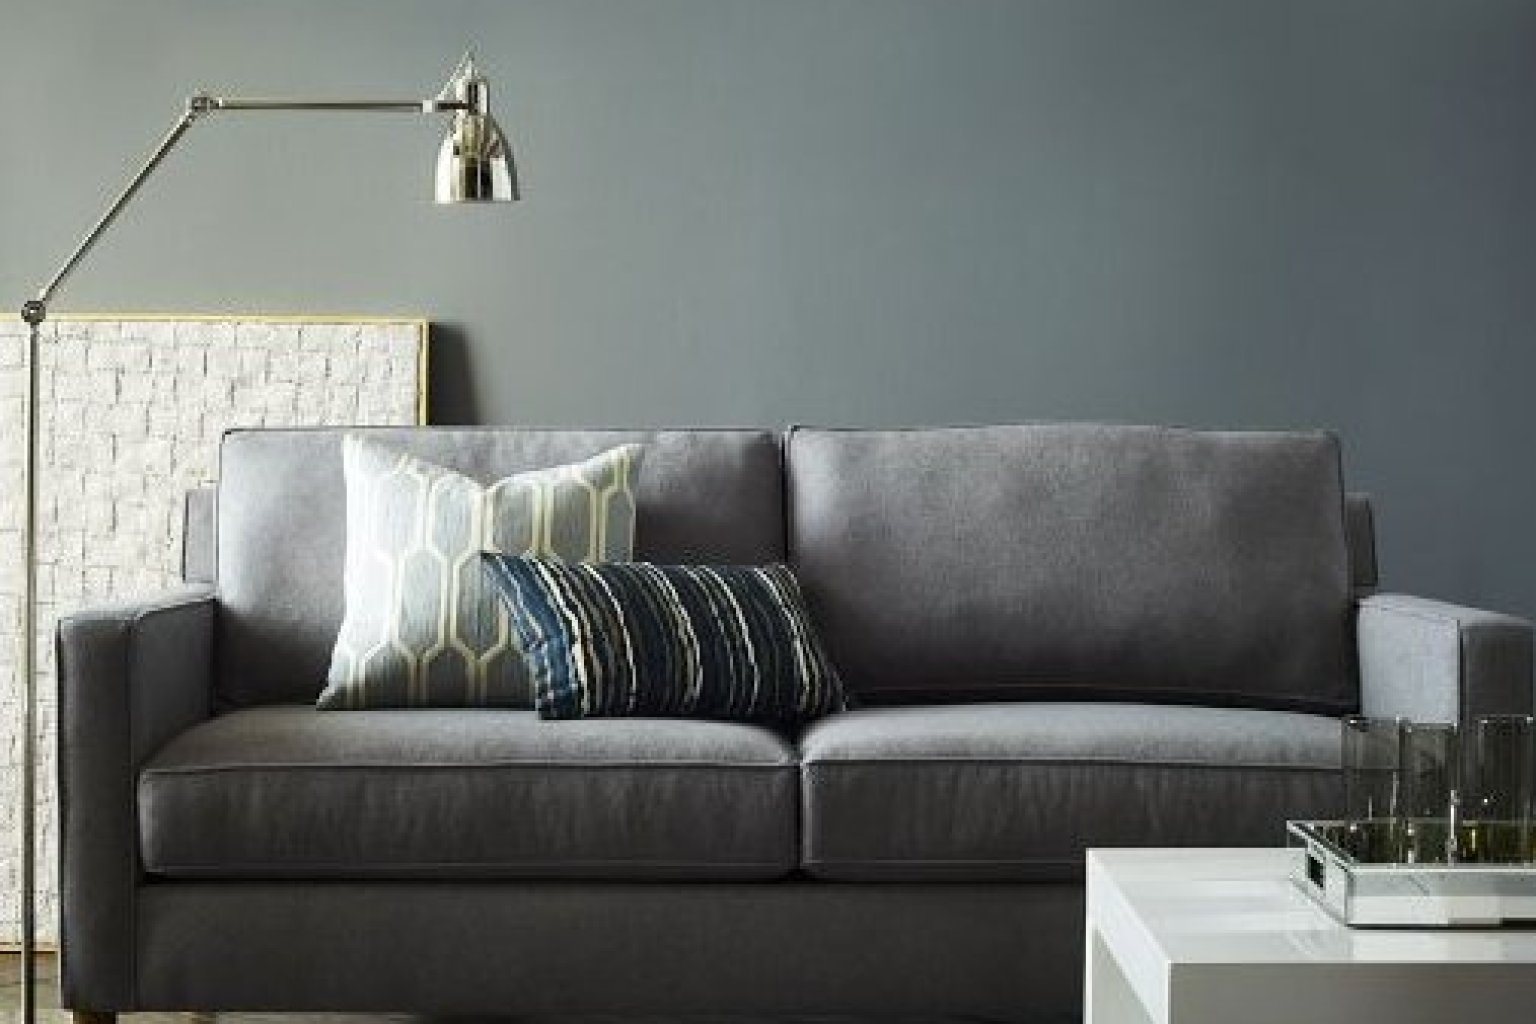 6 Couches For Small Apartments That Will Actually Fit In Your